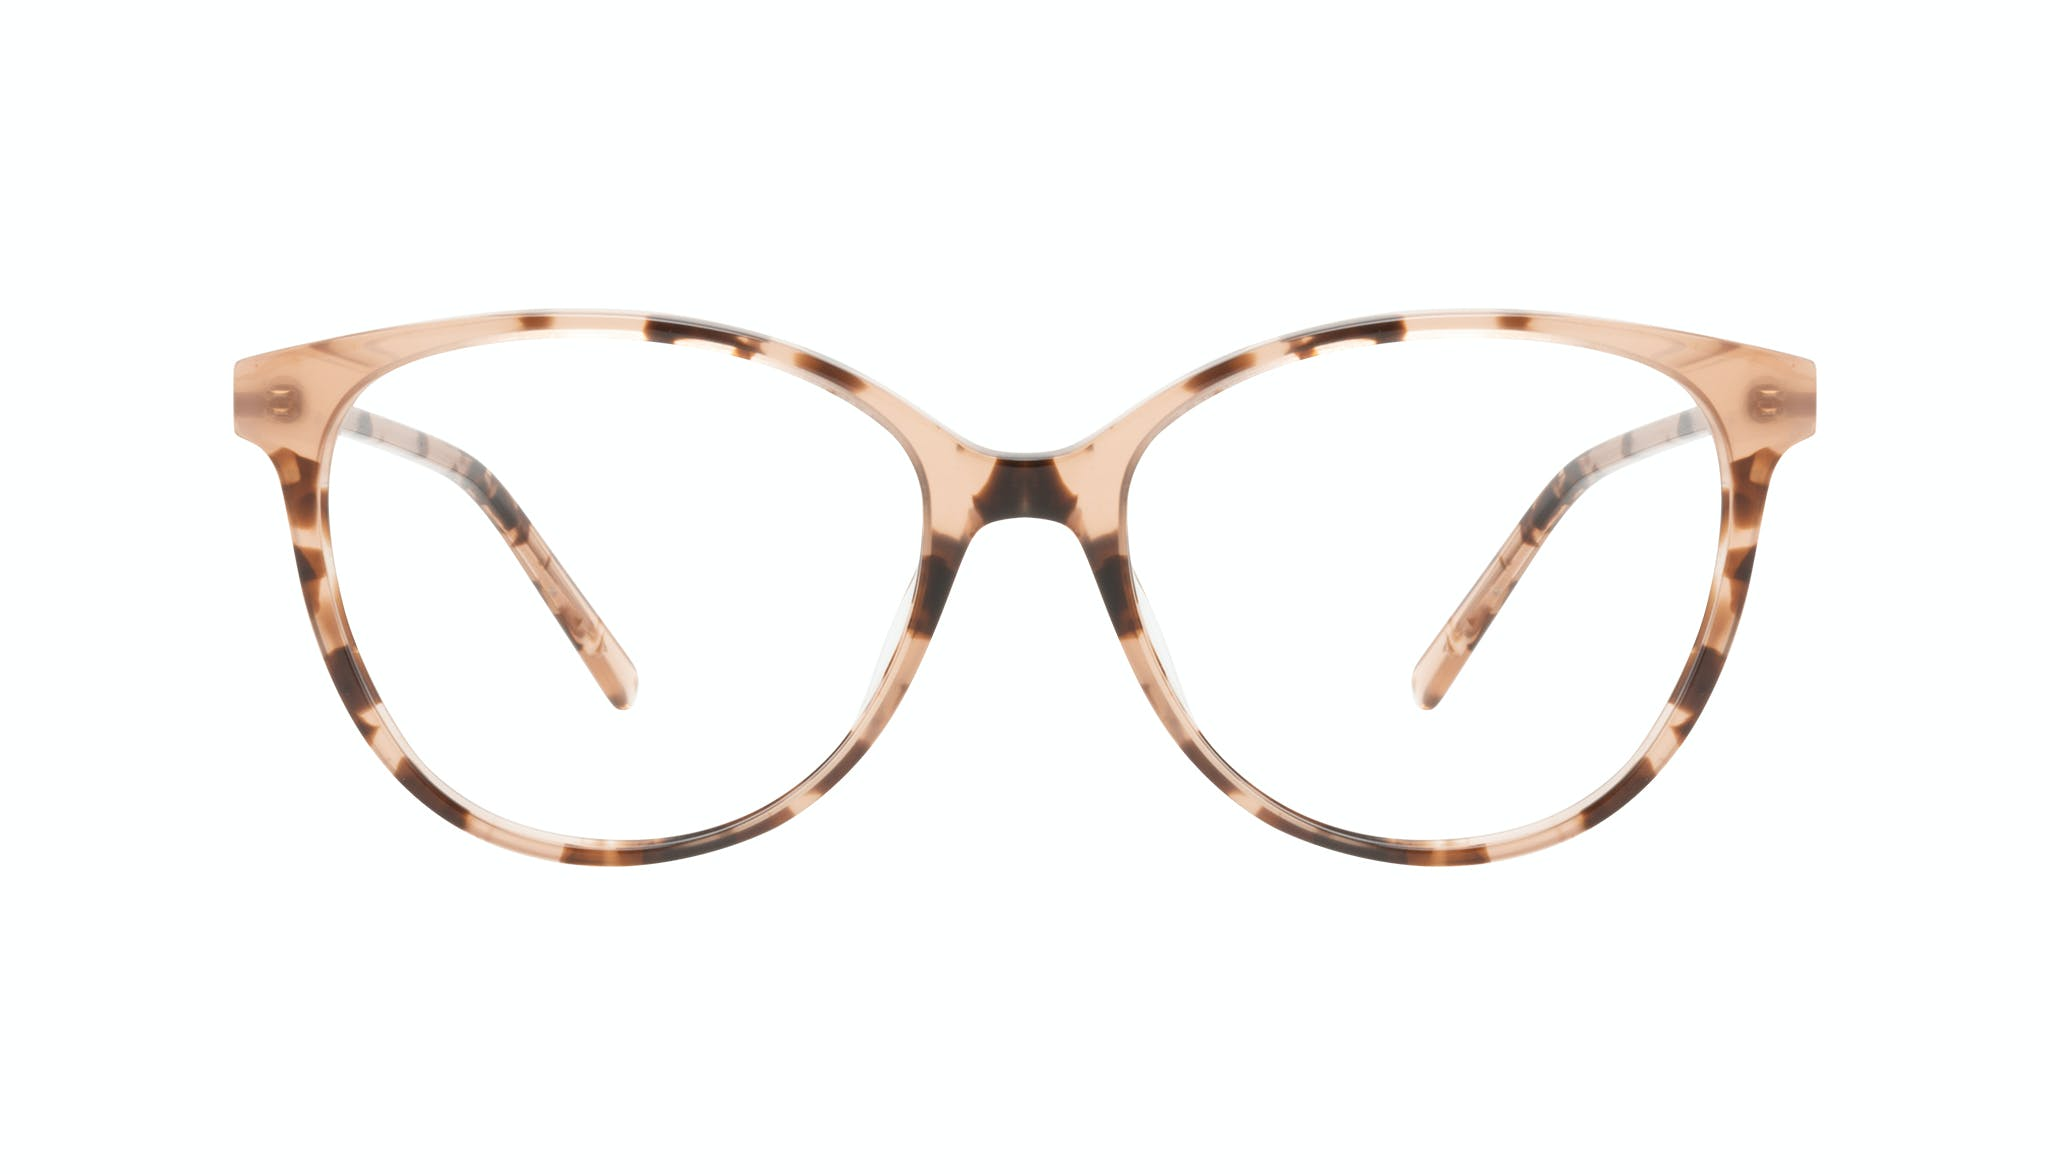 Affordable Fashion Glasses Round Eyeglasses Women Imagine II Plus Tortie